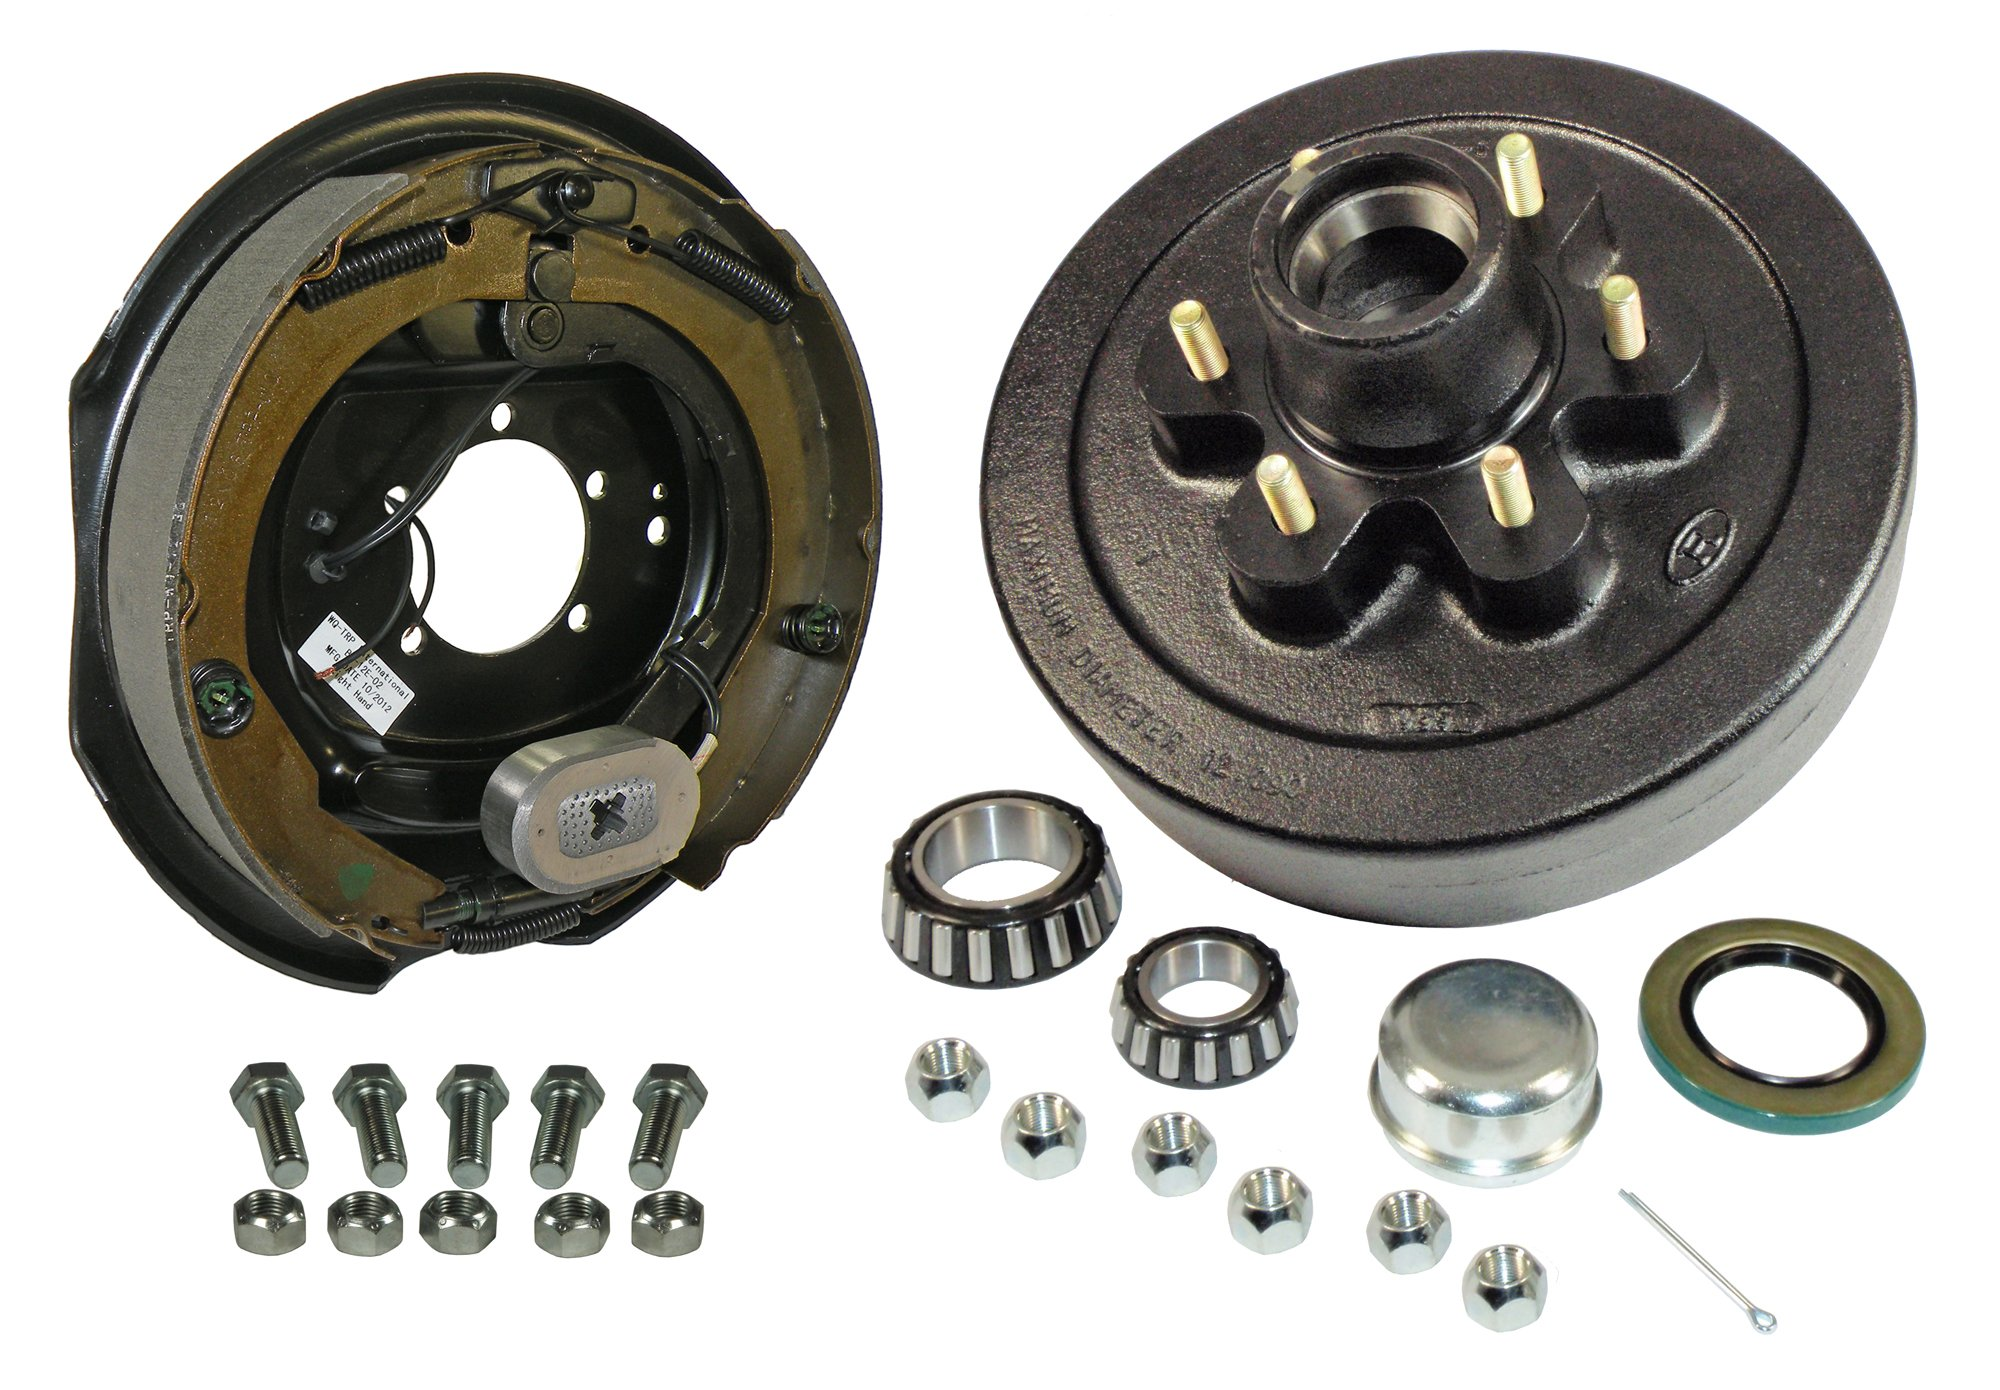 Rigid Hitch 6-Bolt on 5-1/2 Inch Bolt Circle - 12 Inch Hub/Drum with Electric Brake Assembly - Passenger Side by Rigid Hitch